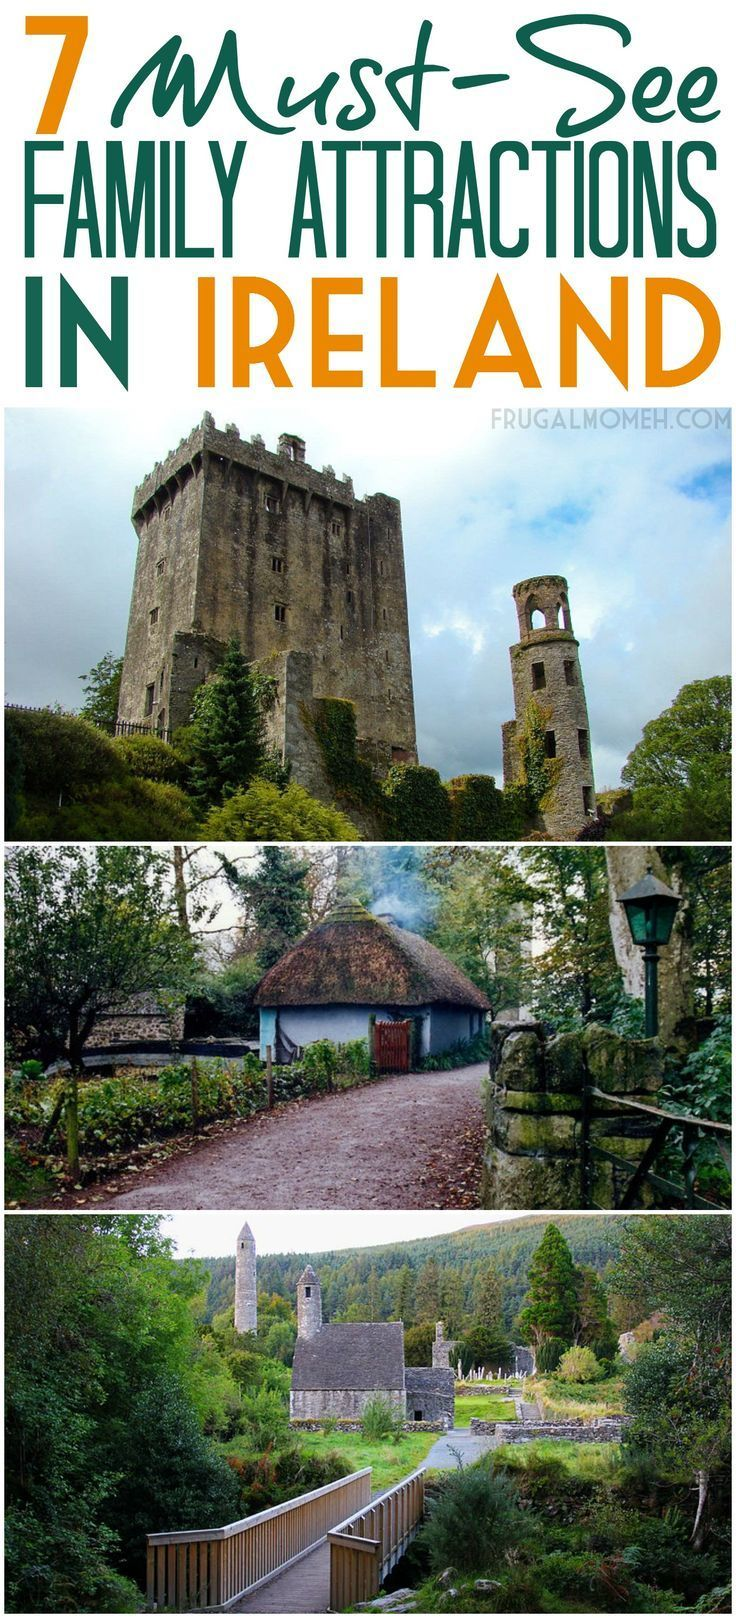 Ireland is, perhaps, the greatest country in the world for a family vacation. Travel in Ireland is a must and these attractions are perfect for family travel.